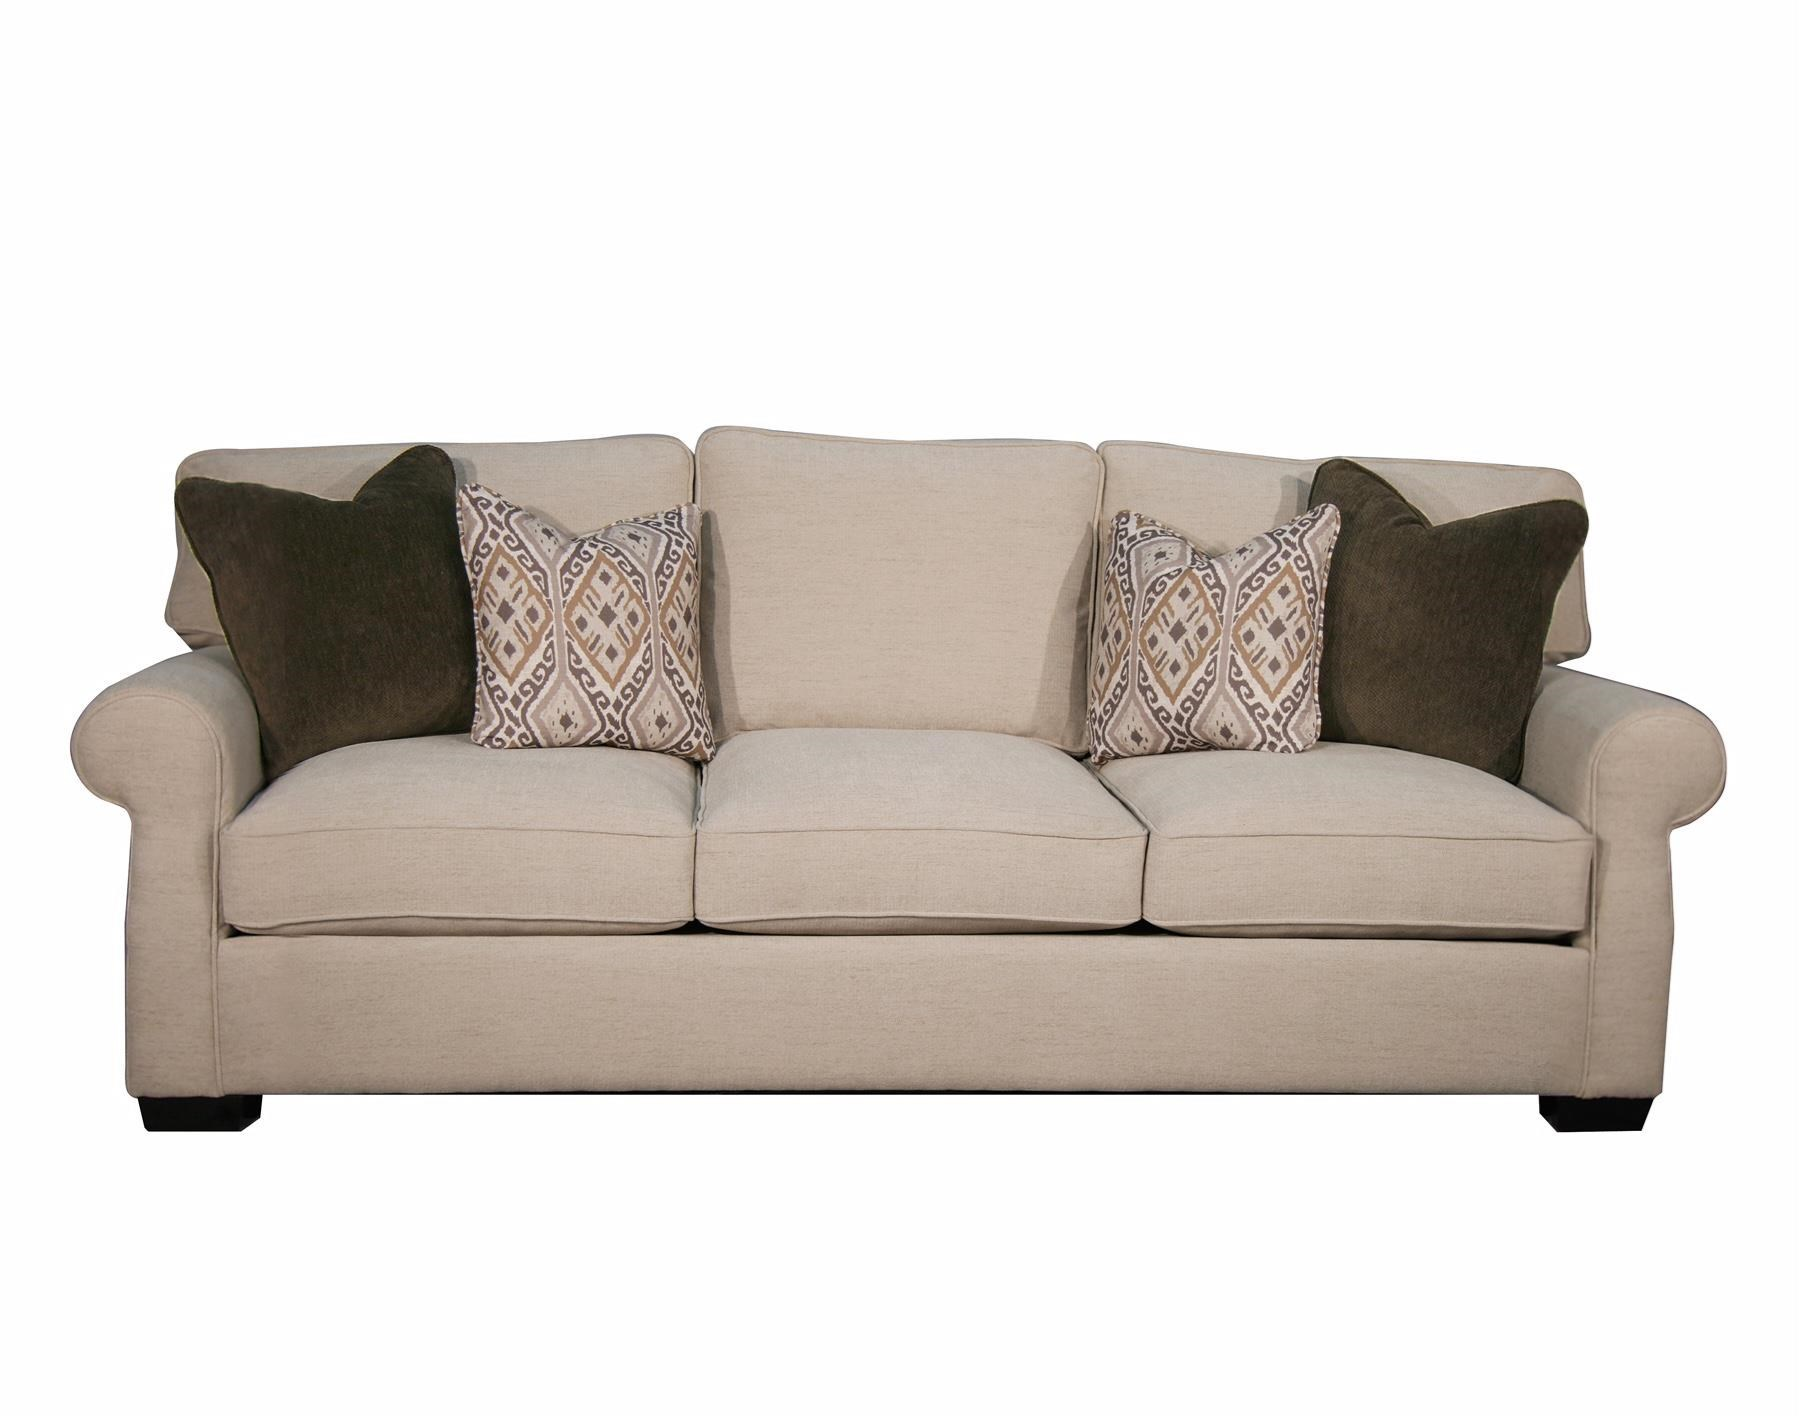 Fairmont Designs Rio Grande Stationary Sofa W/ Rolled Arms   Royal Furniture    Sofas